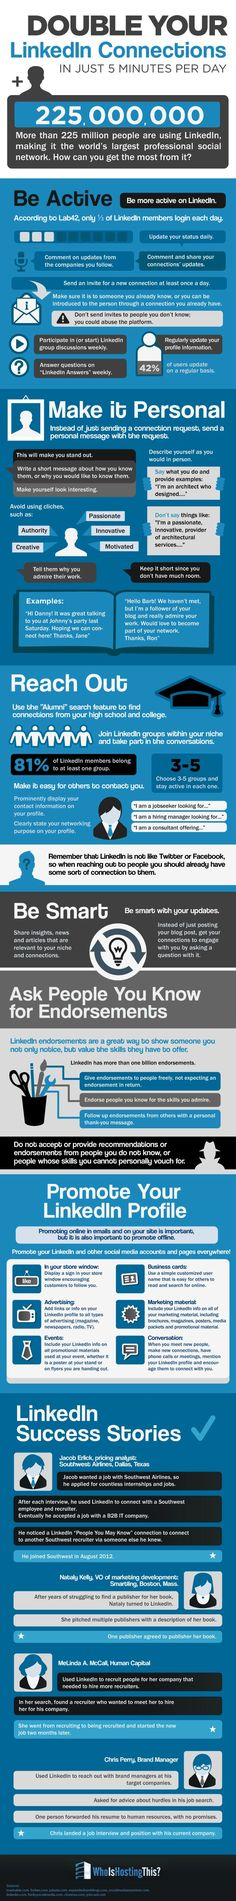 10 Simple Tips to Double your LinkedIn Connections